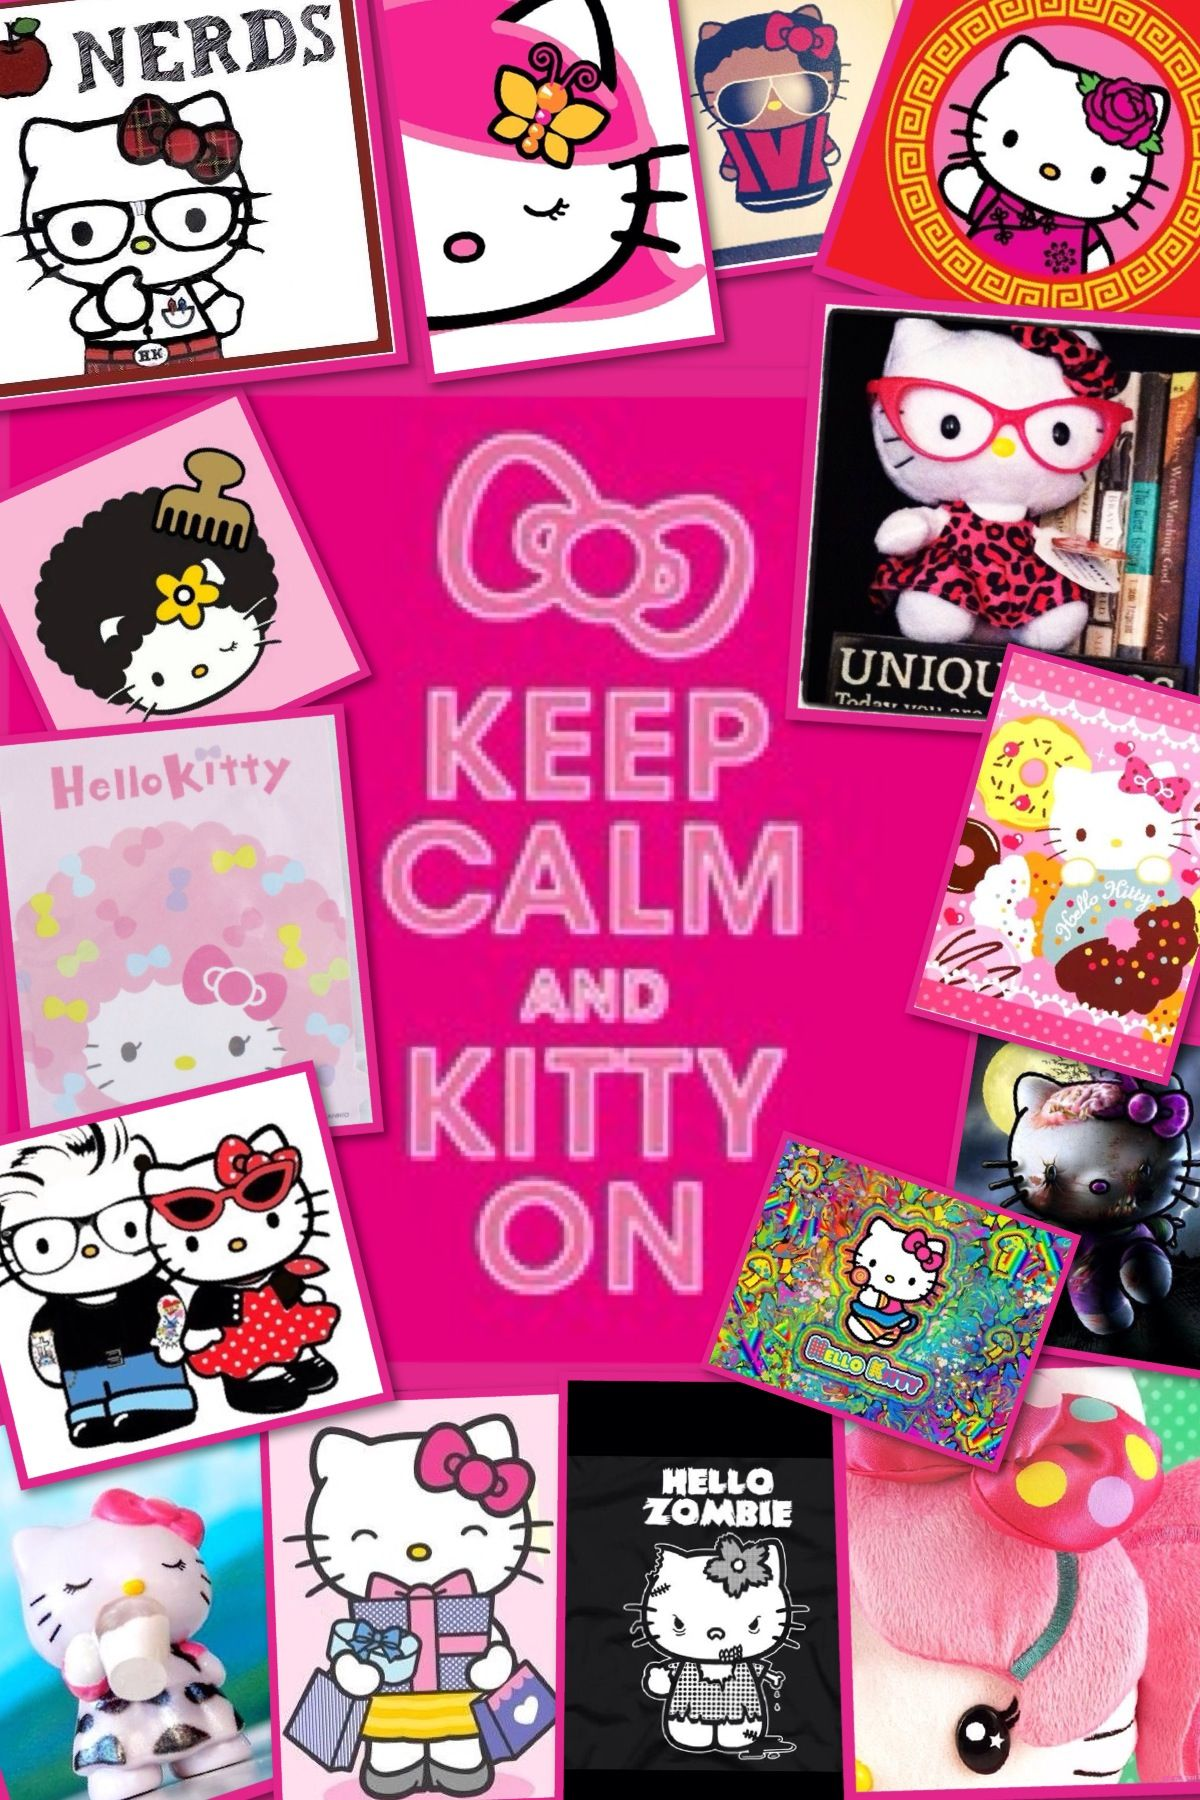 Beautiful Wallpaper Hello Kitty Love - 76e5ce32836c2481b175307453c5a7b8  Collection_15131.jpg